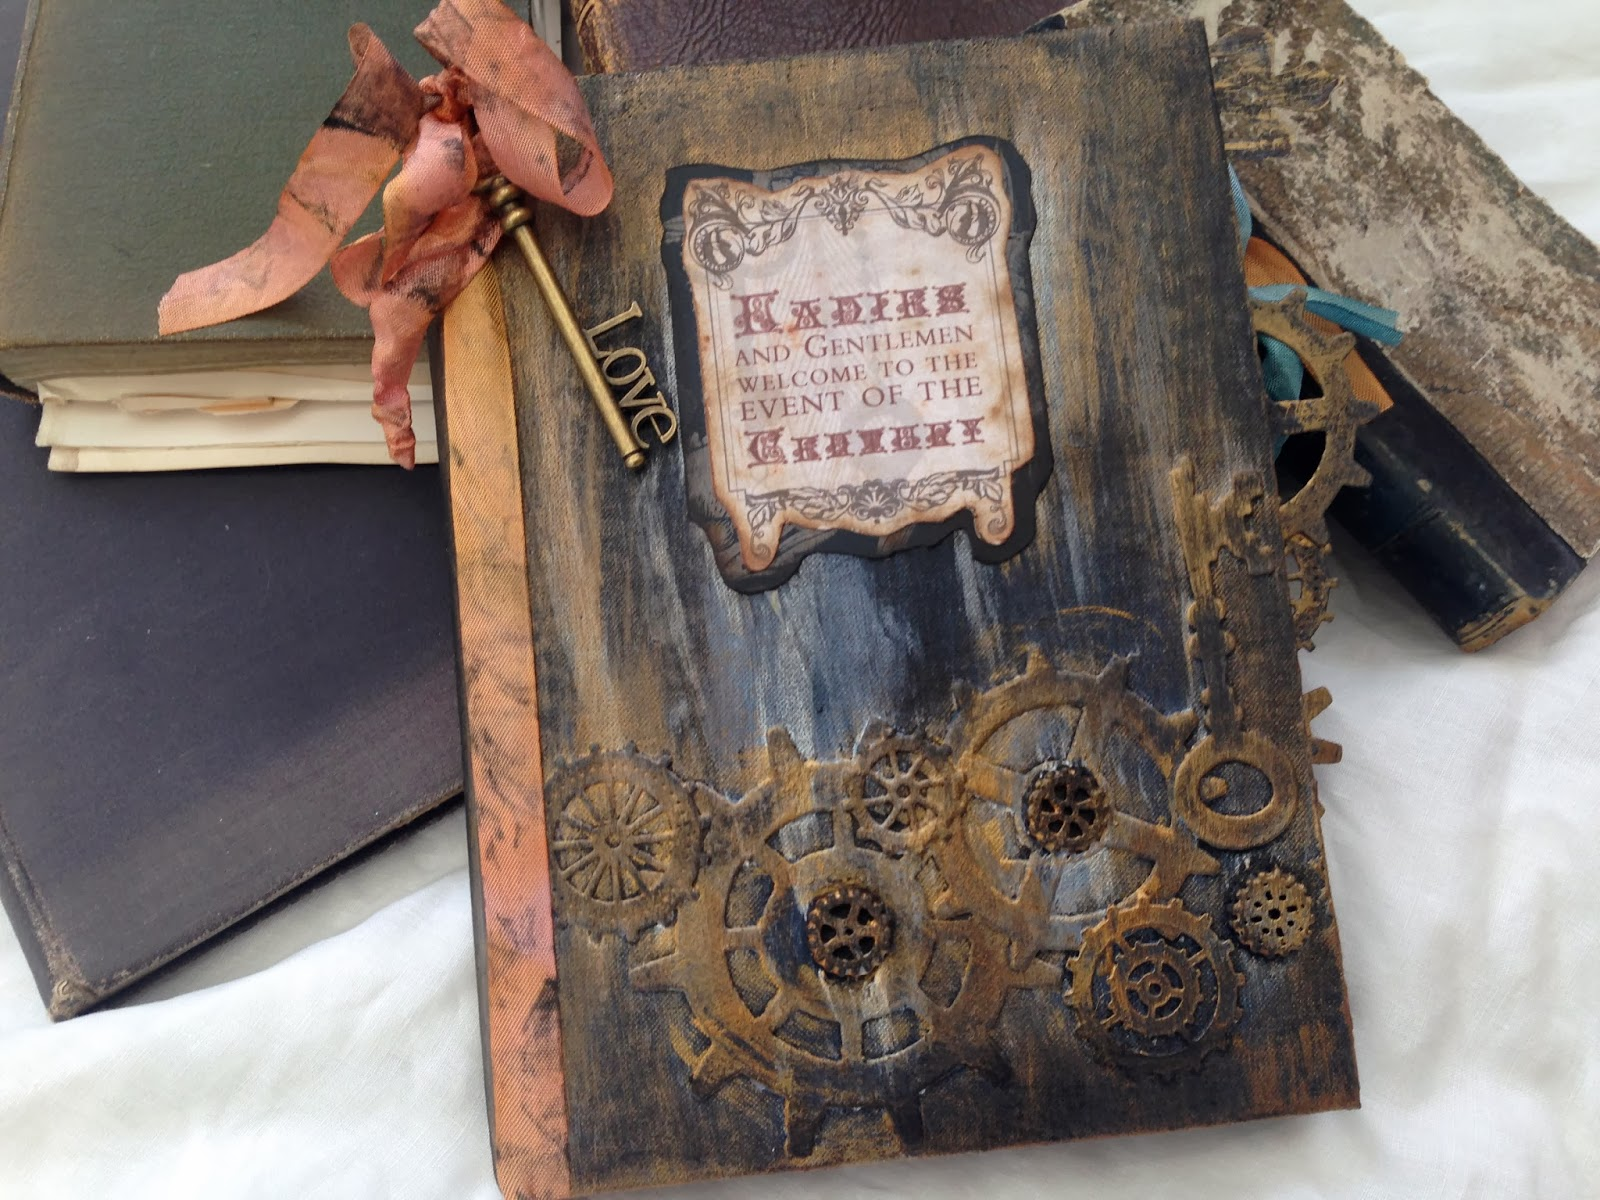 How to make scrapbook vintage - With A Love Of Vintage Materials And Scrapbooking Sharon Will Take Your Keepsakes And Treasures And Make Them